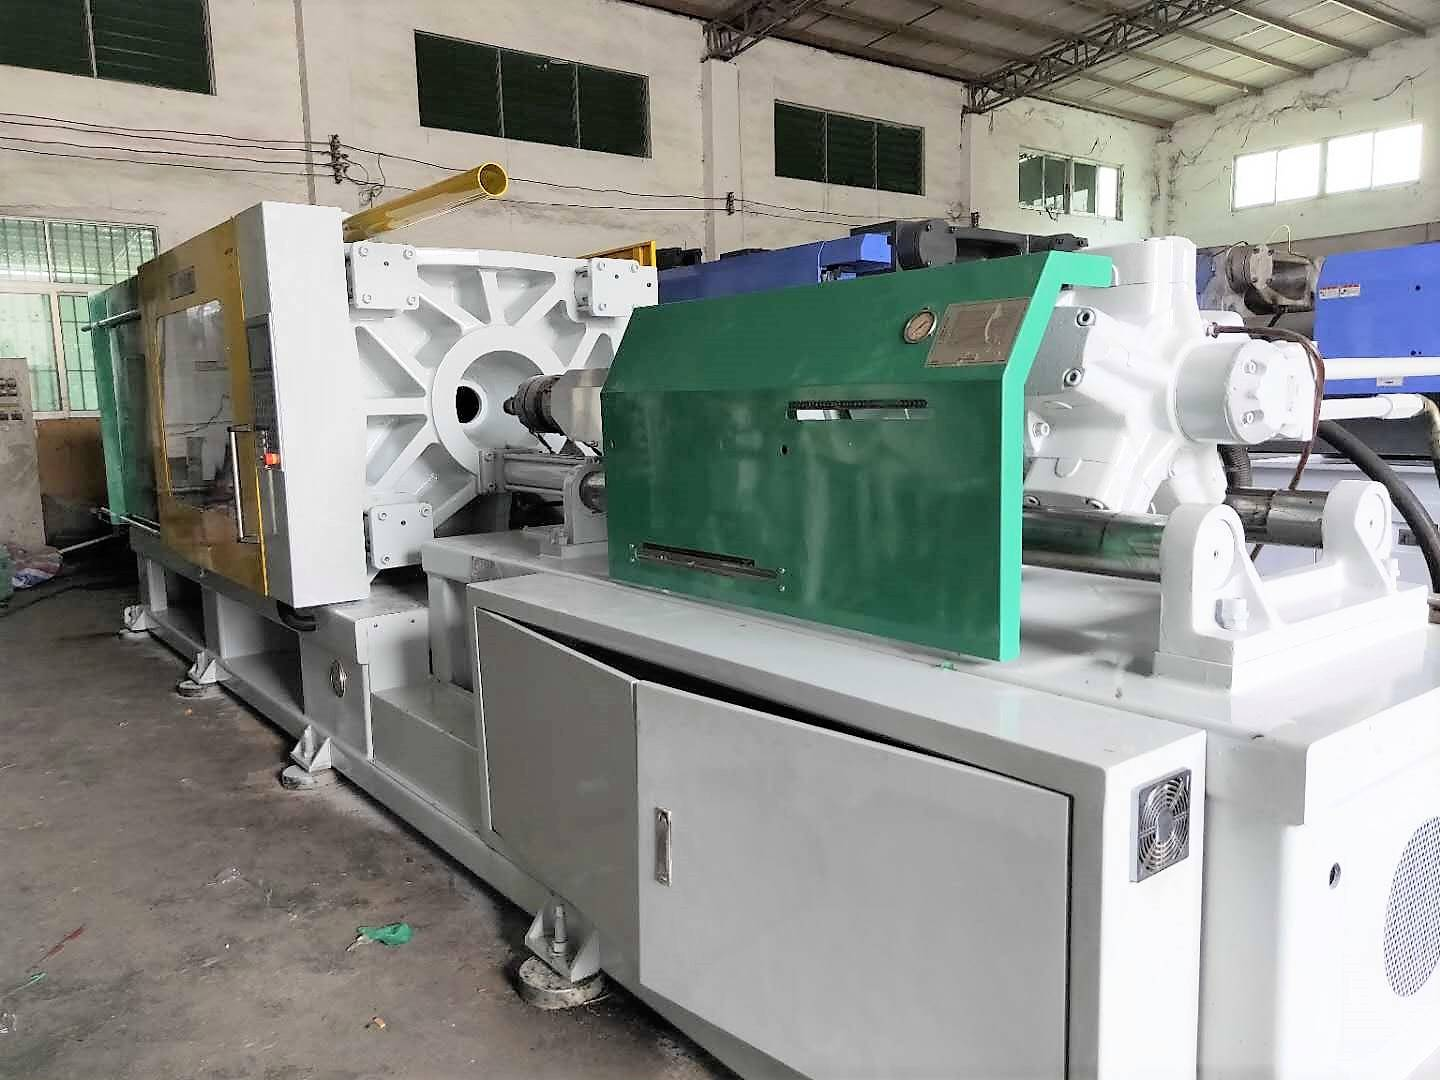 Taiwan Chen Hsong Supermaster SM450 used Injection Molding Machine